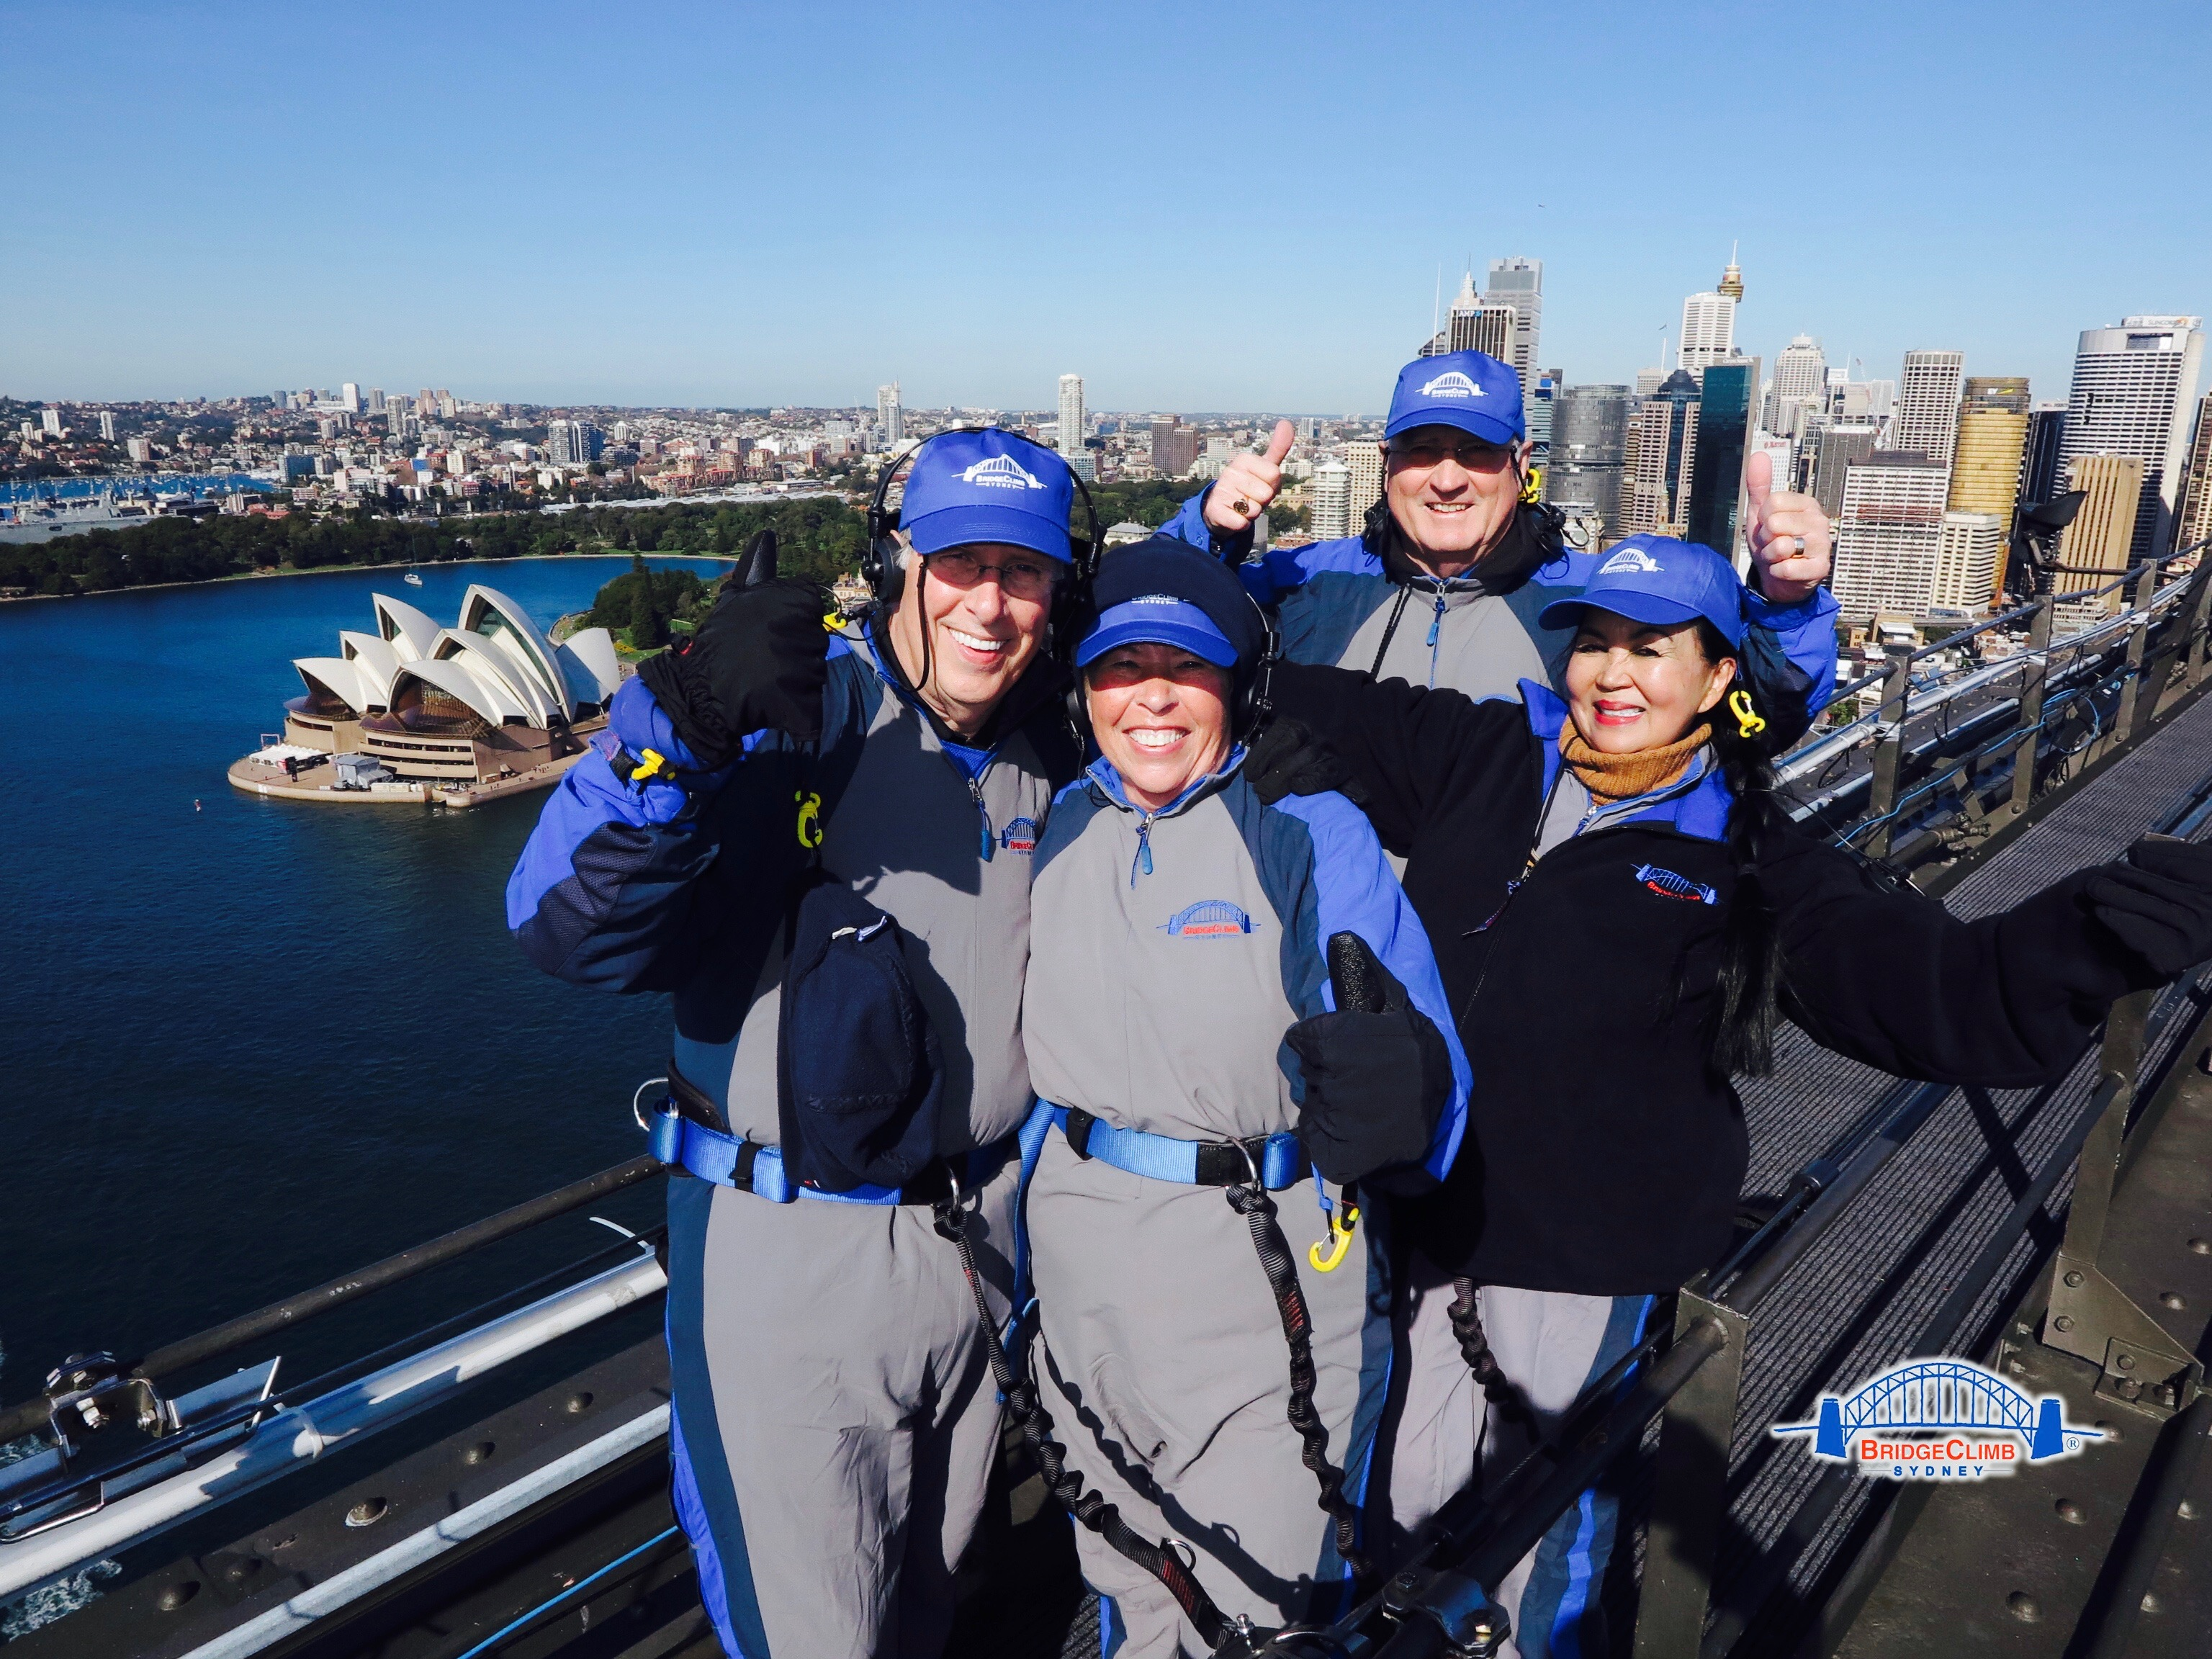 How can we not accept the challenge to climb the iconic landmark, Sydney Harbor Bridge? If you're looking for a true HIGH--this is an absolute must do! #bestviewofyourlife